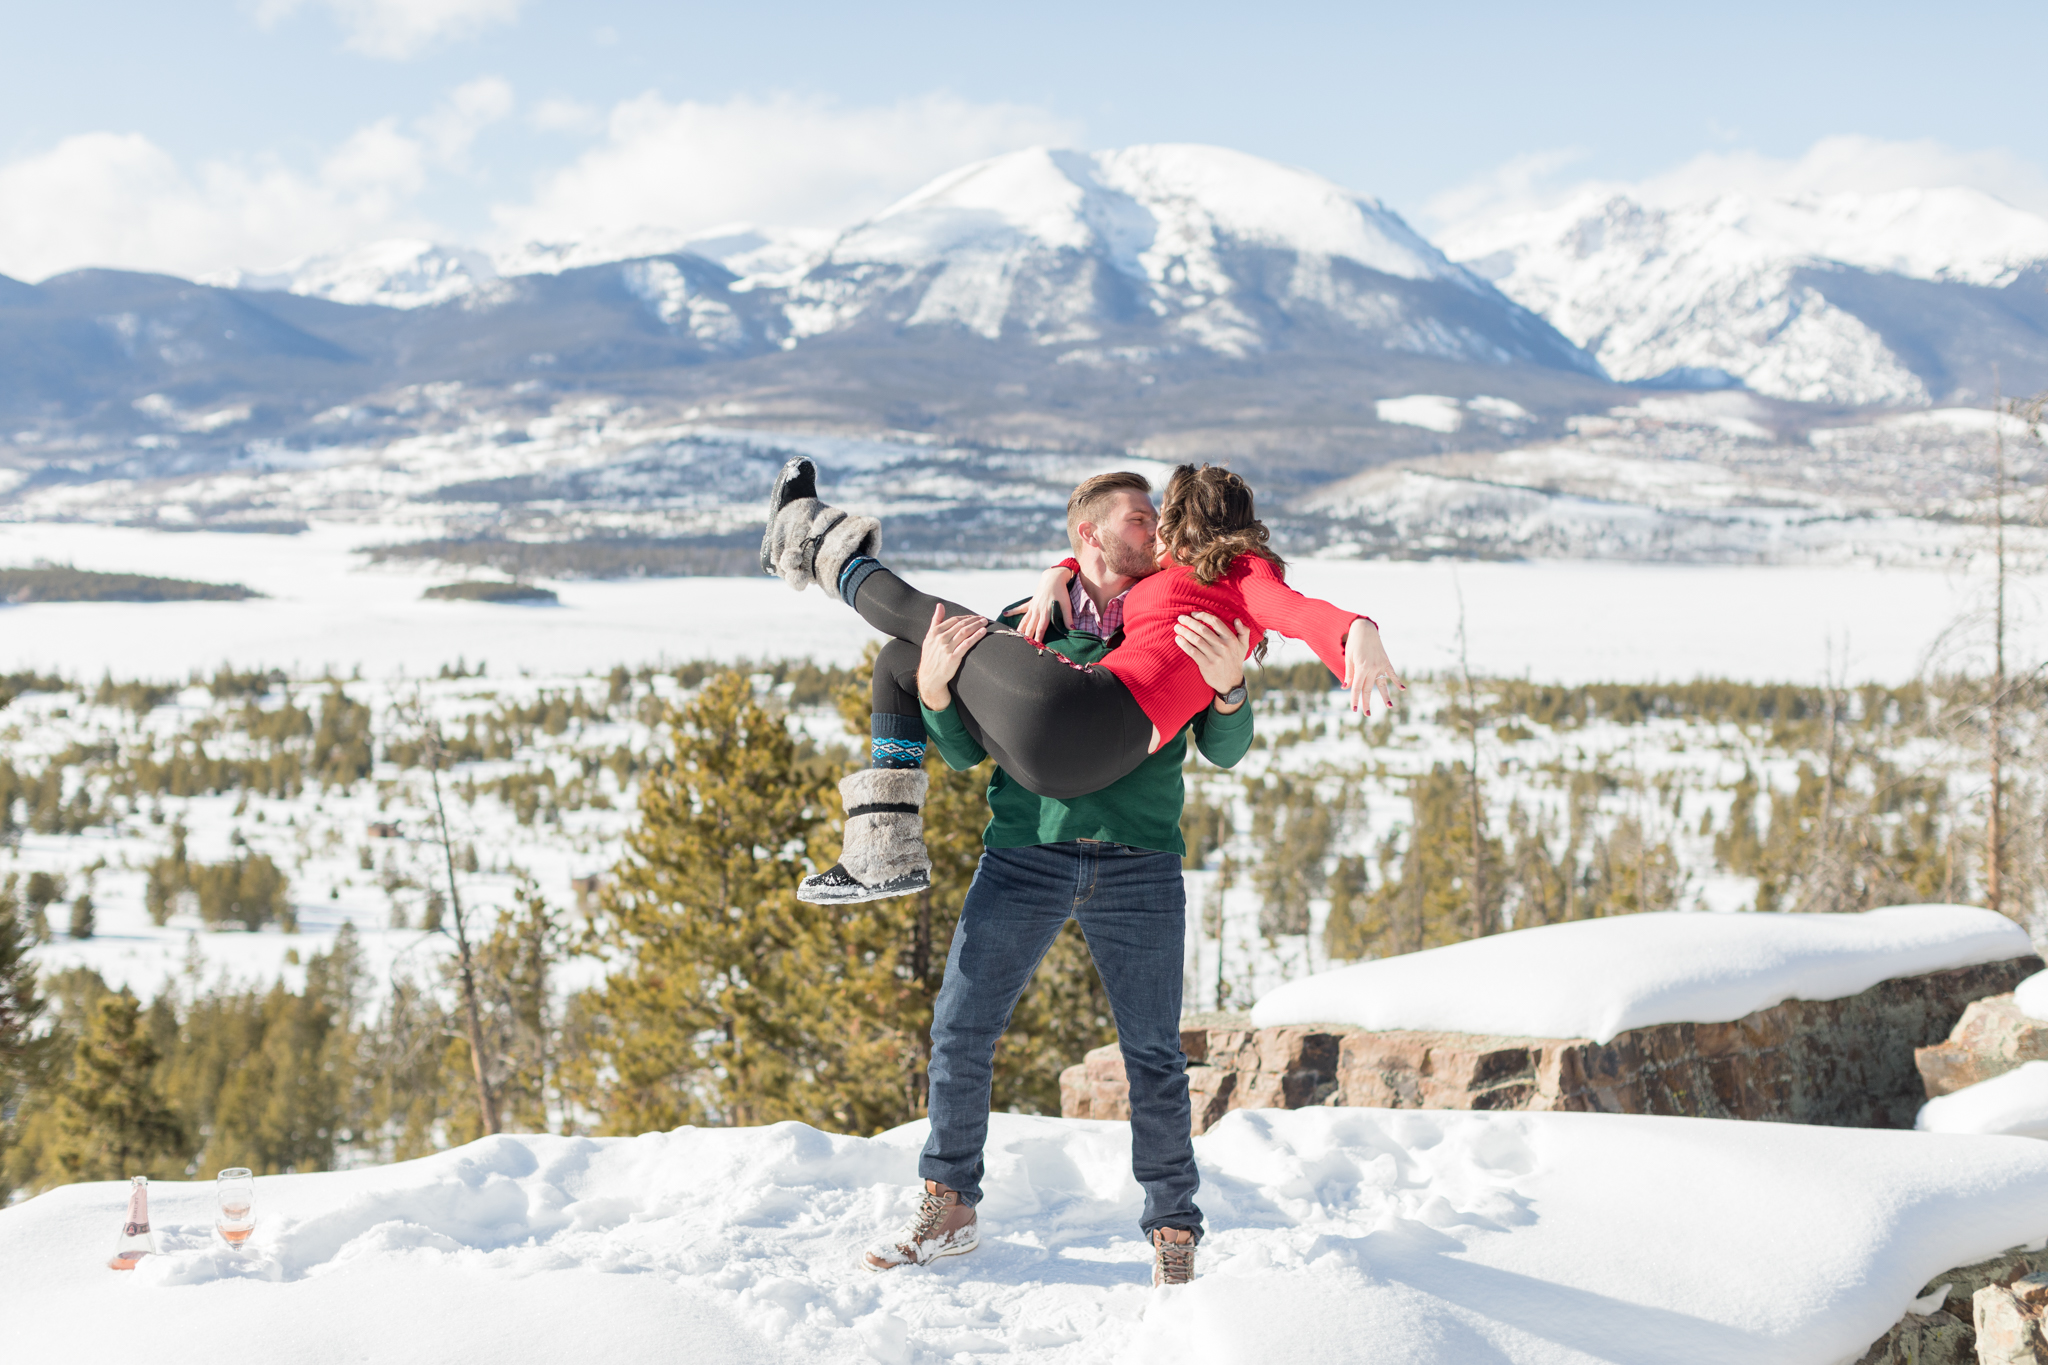 Tanner_and_Bryanna_Breckenridge_Proposal-9